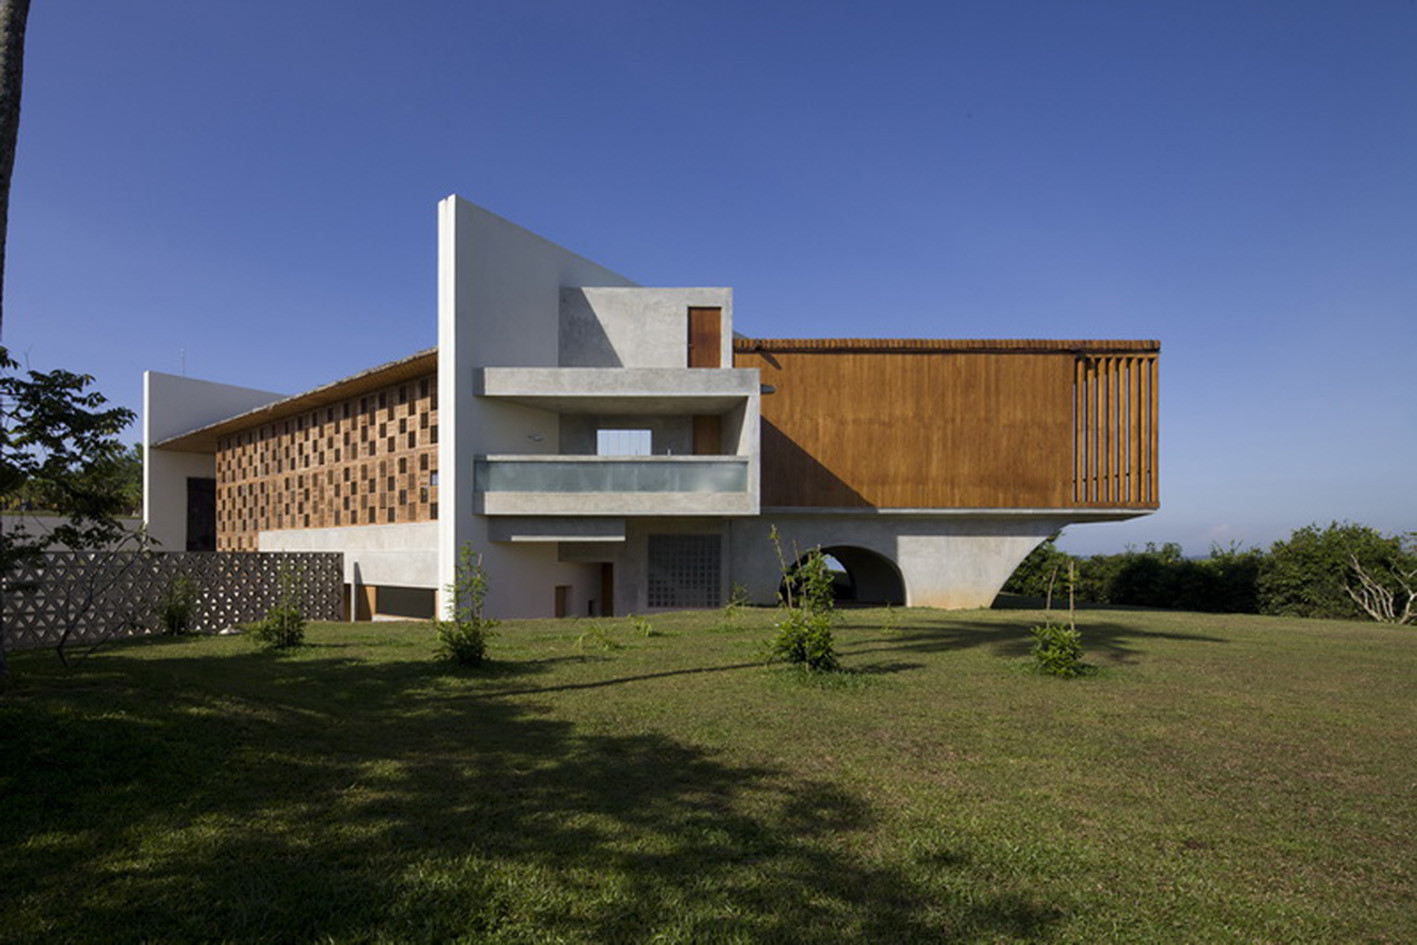 Villa vista shigeru ban architects archdaily for Villa architect